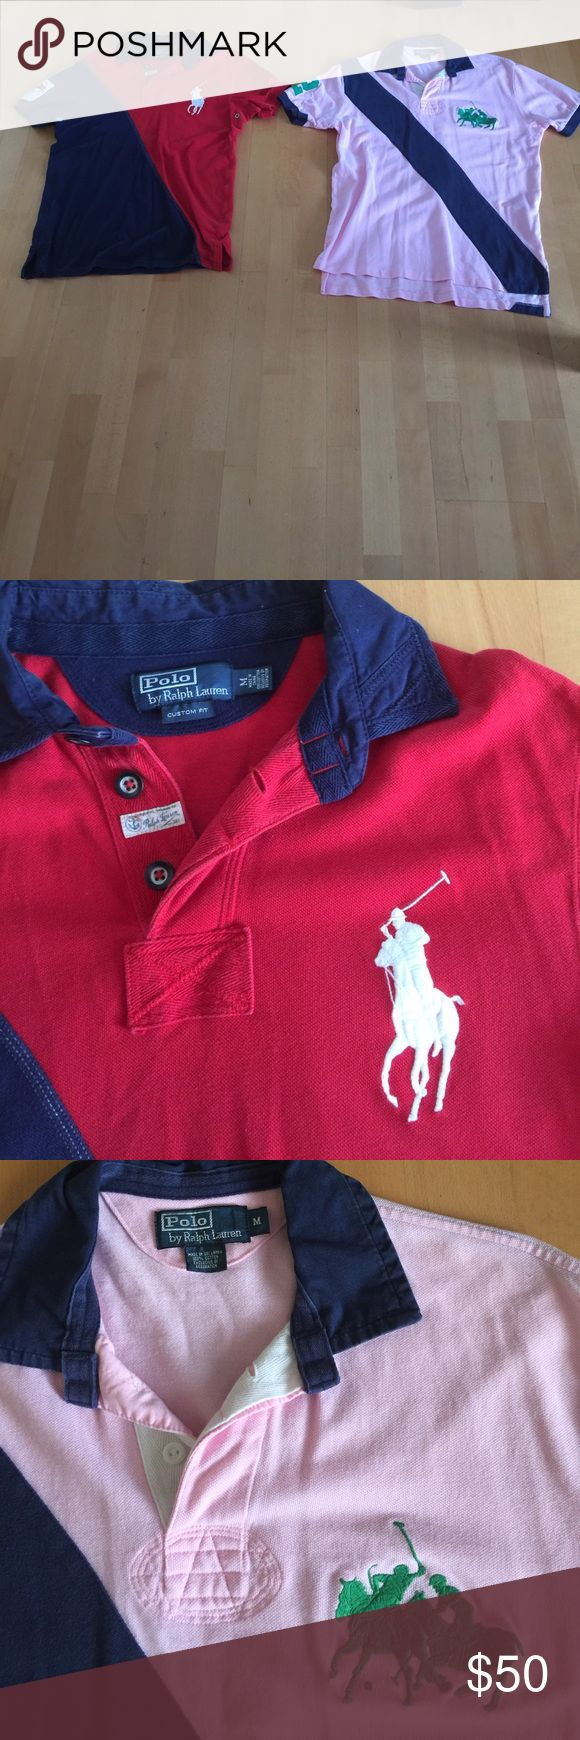 Polo by Ralph Lauren Men's Shirts size Medium I am selling two men's shoer sleeve polo shirts size medium from Ralph Lauren at the same low price 😍😍😍😍😍.   Shirts have been worn and washed previously and remain in excellent condition.   No marks or tears.   Please no trades but I accept reasonable offers. Polo by Ralph Lauren Shirts Polos